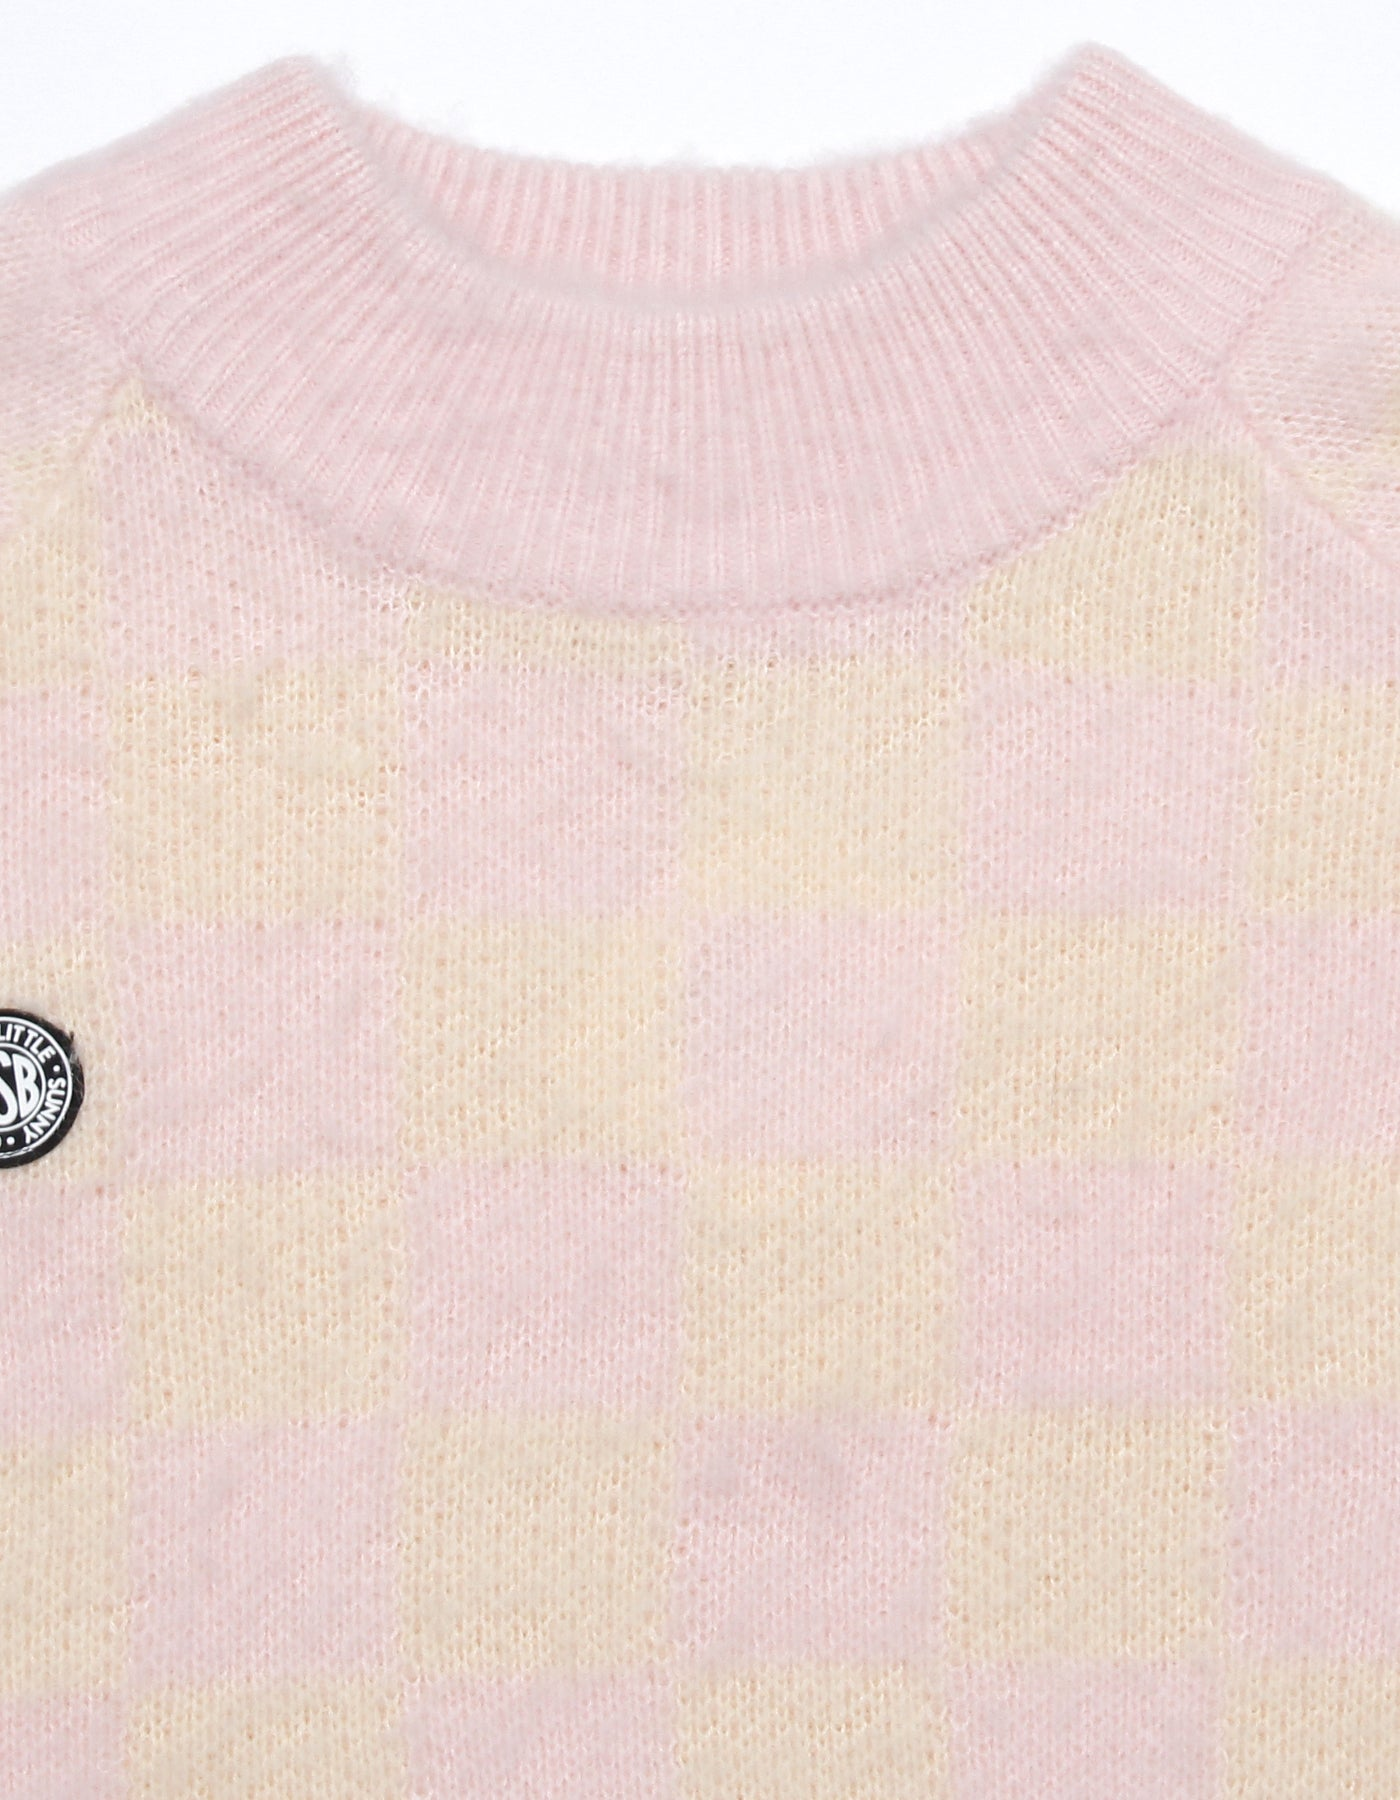 Checker knit top / PINK